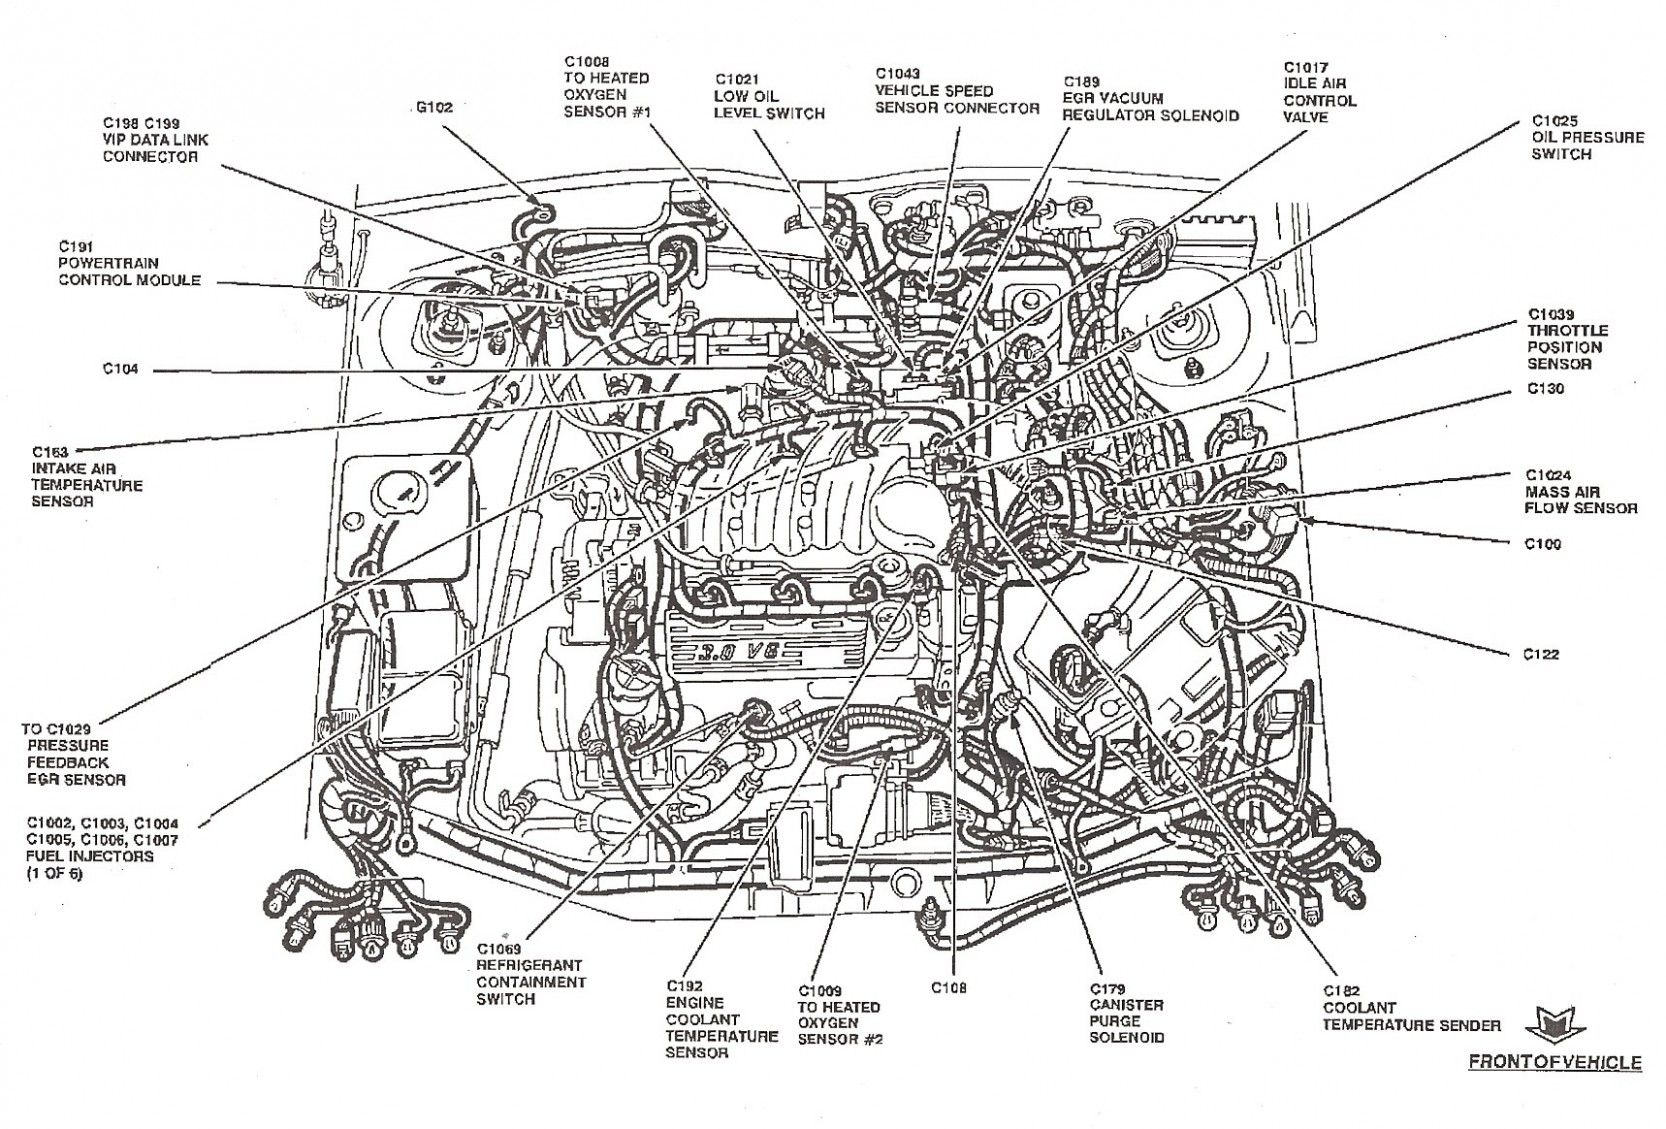 1972 Oldsmobile Cutlass Engine Diagram